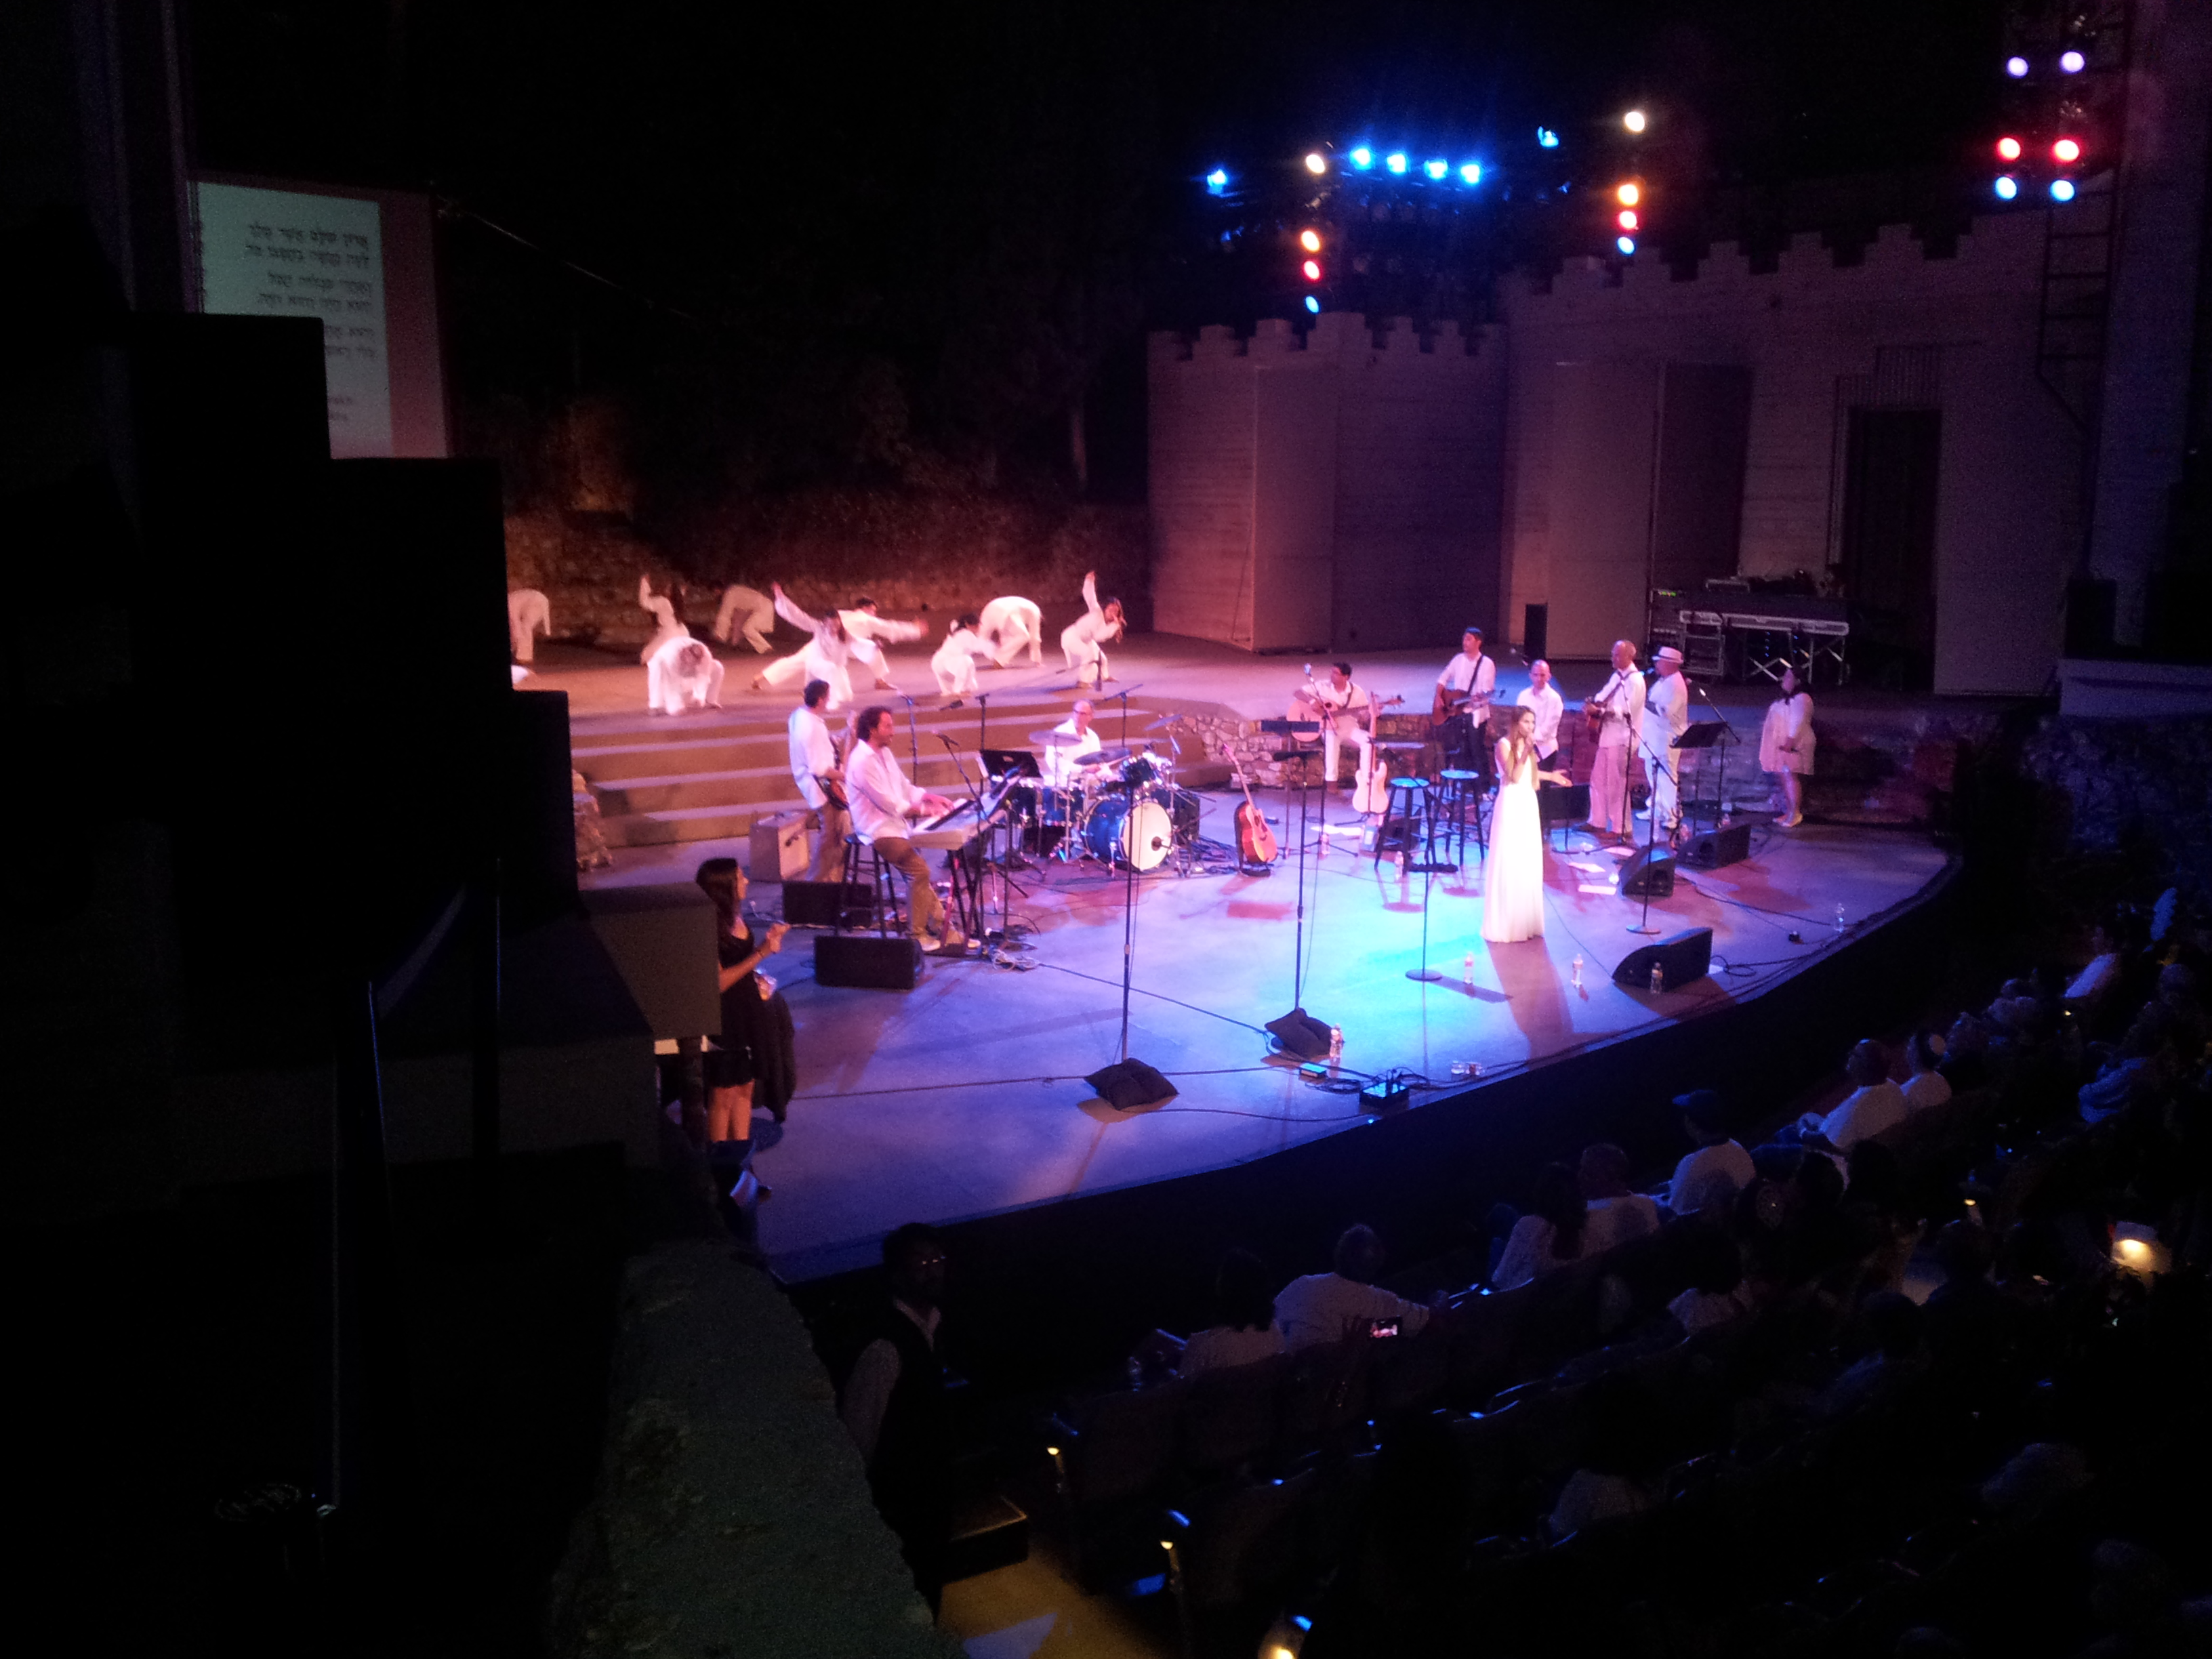 Concert at the Ford Amphi Theatre